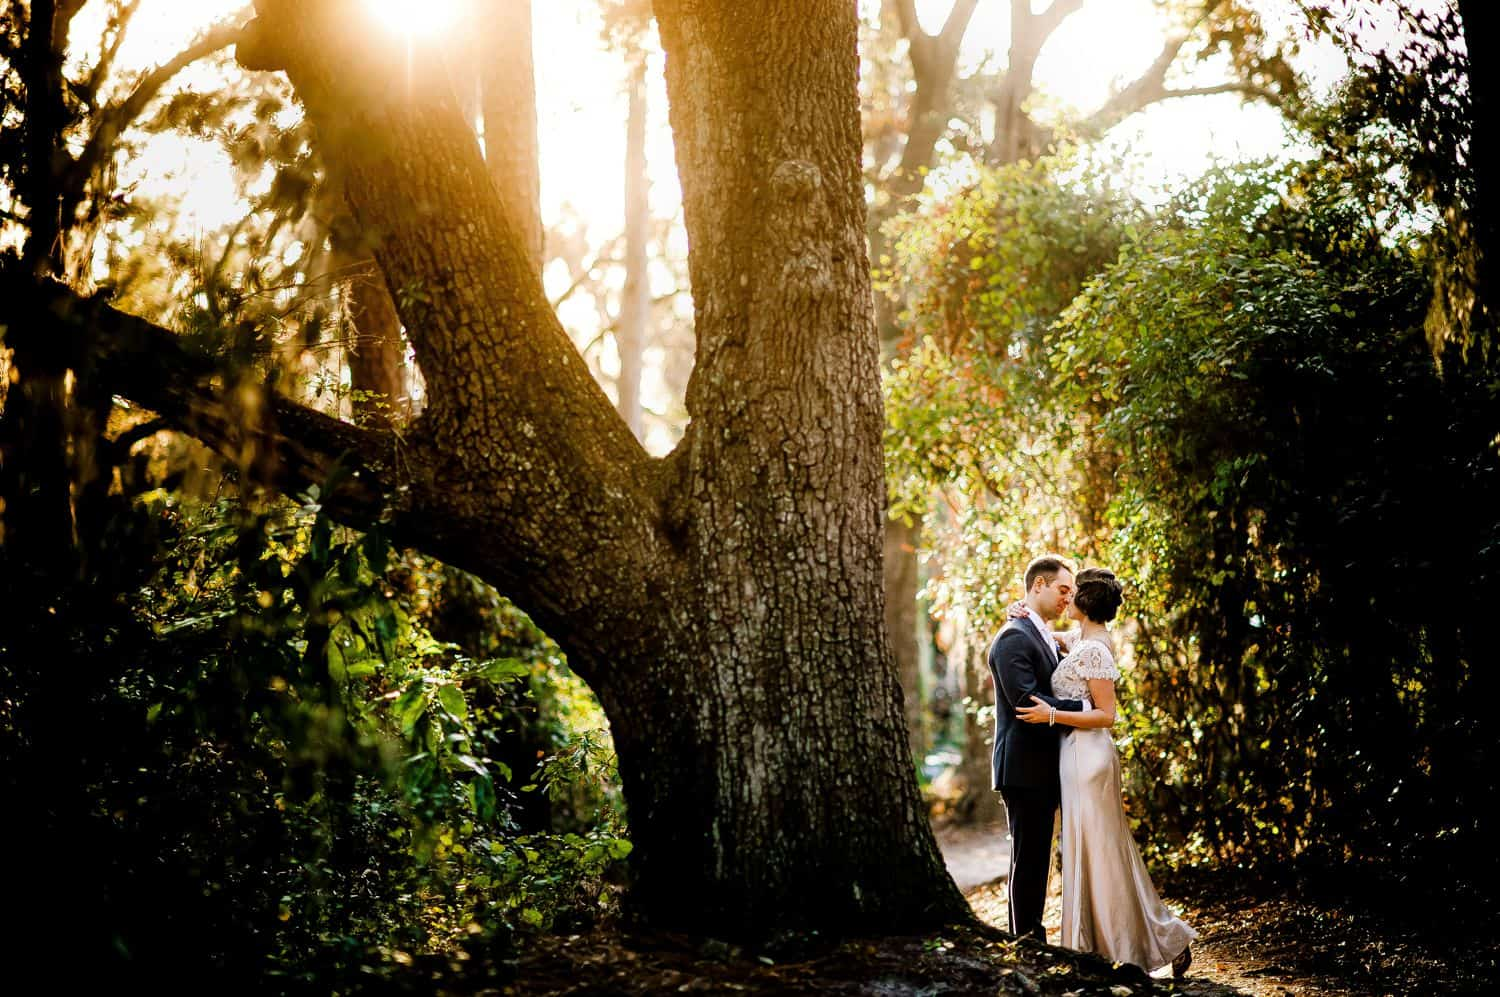 Is Táve Right for You? How To Market Smart & Track Your Cash with the Best Photography Studio Management Software: Bride and groom kiss delicately under a massive old oak tree.